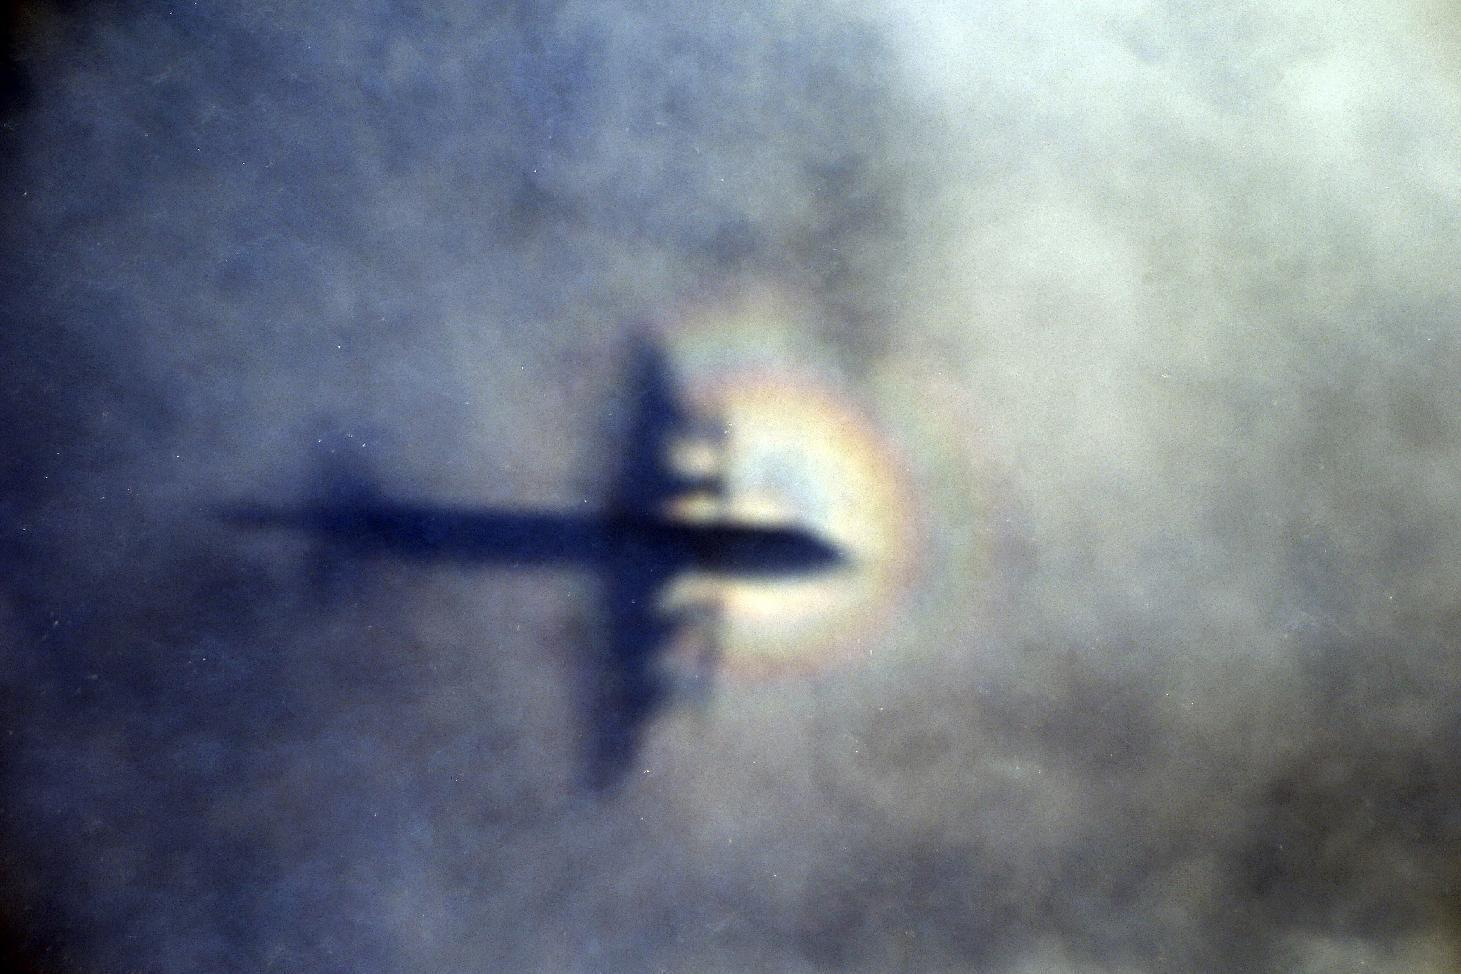 AF447 searcher recalls pain of failure as MH370 hunt ends